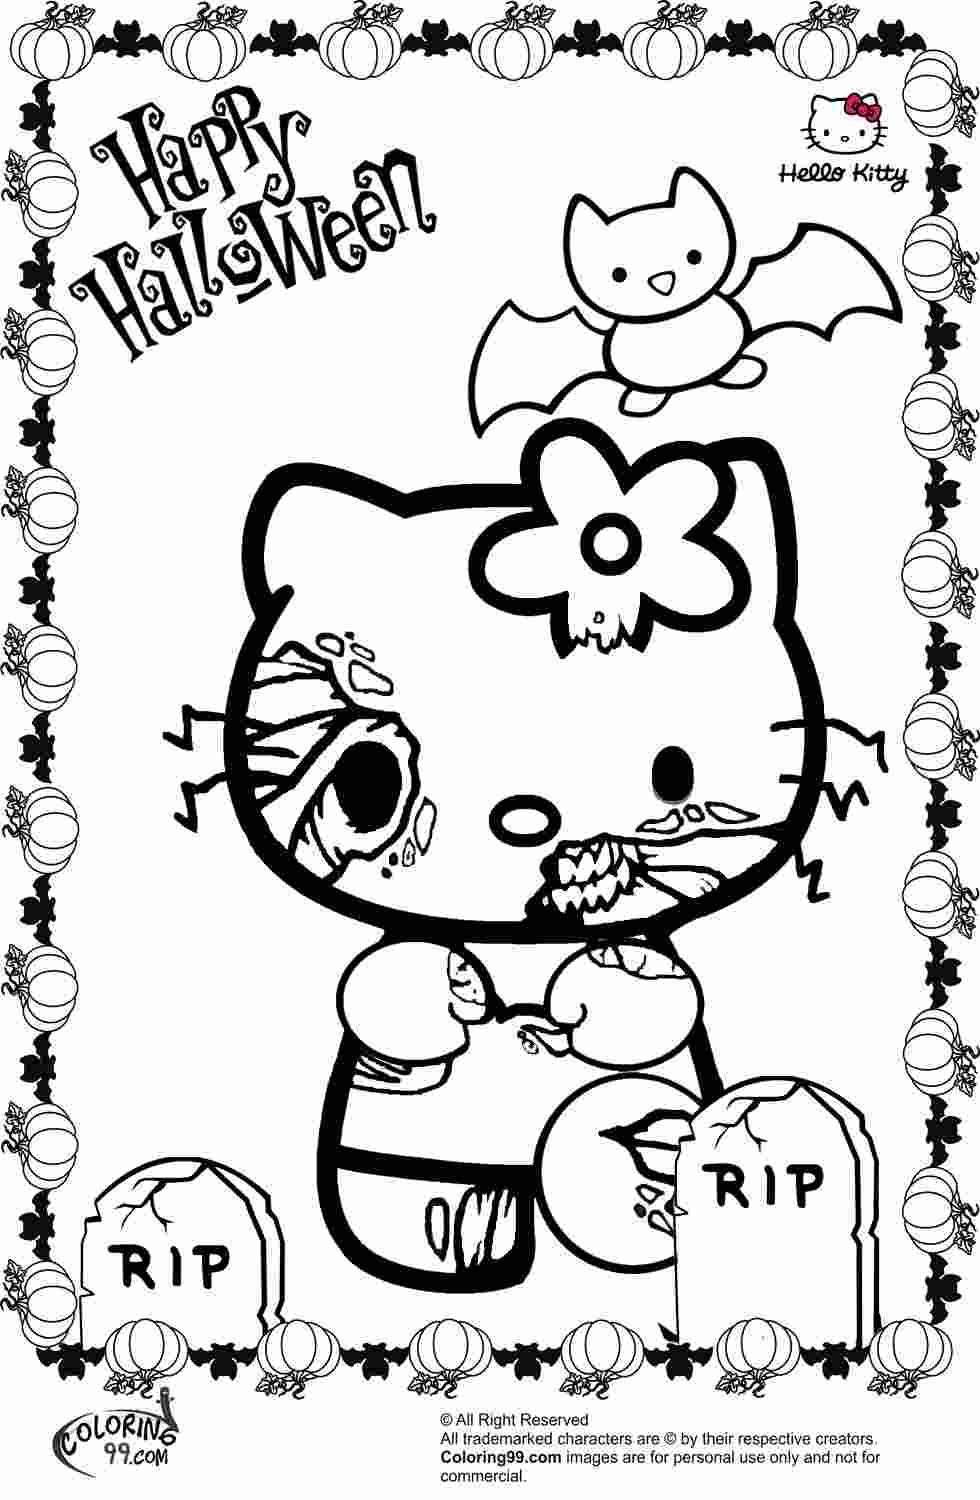 Holloween Printable Coloring Pages Hello Kitty Colouring Pages Halloween Coloring Book Hello Kitty Halloween